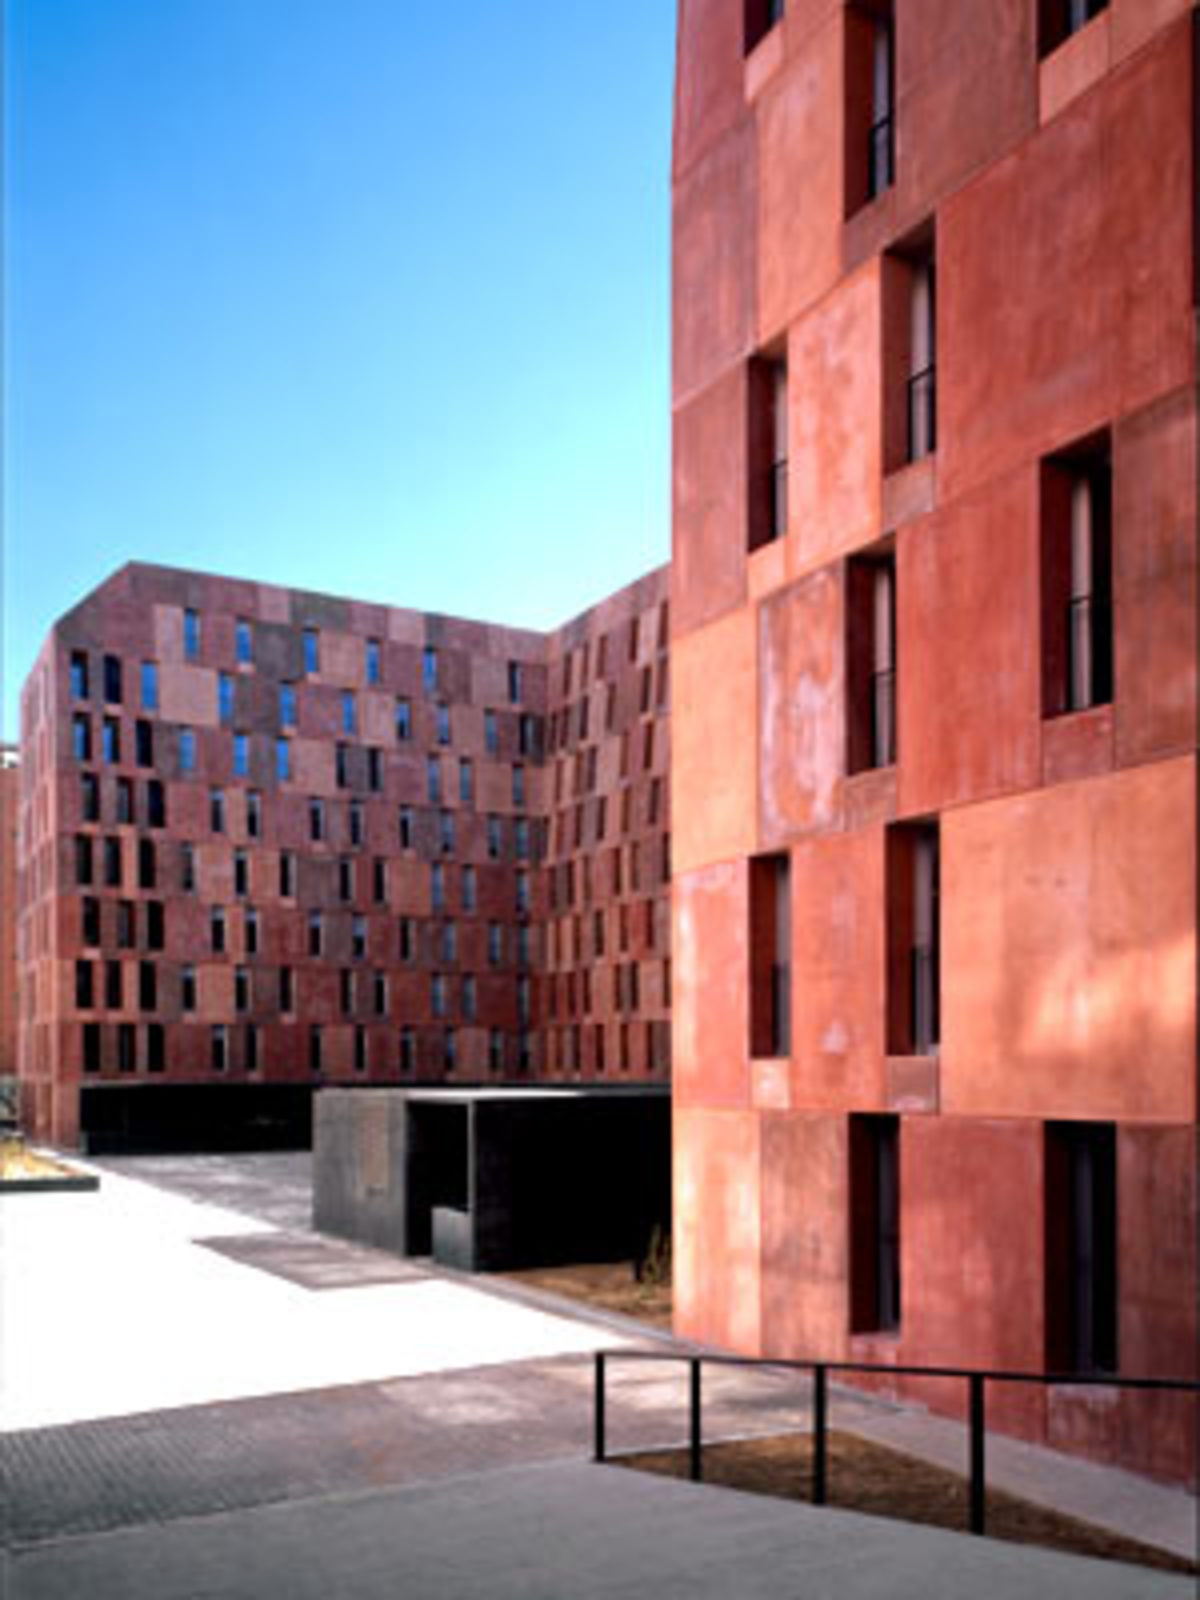 David chipperfield viviendas de la emv empresa municipal for Chipperfield arquitecto